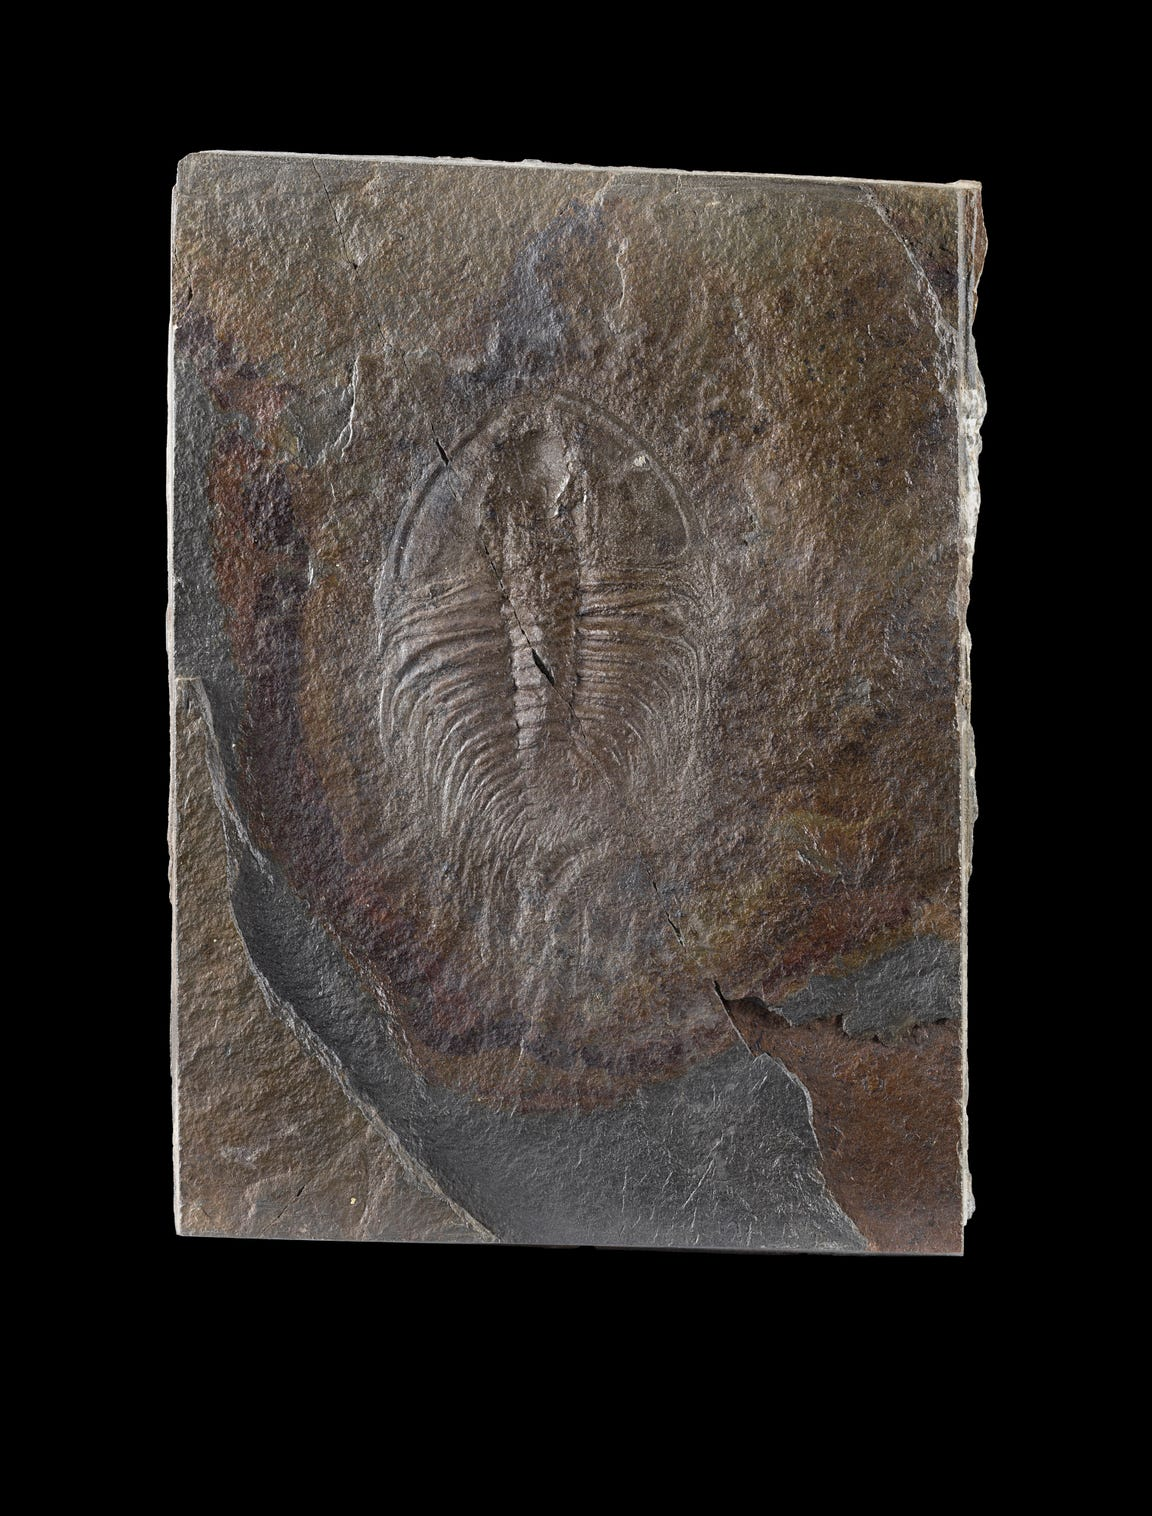 Olenellus, a trilobite is pictured at the newly remodeled Fossil Hall at the Smithsonian Natural History Museum.